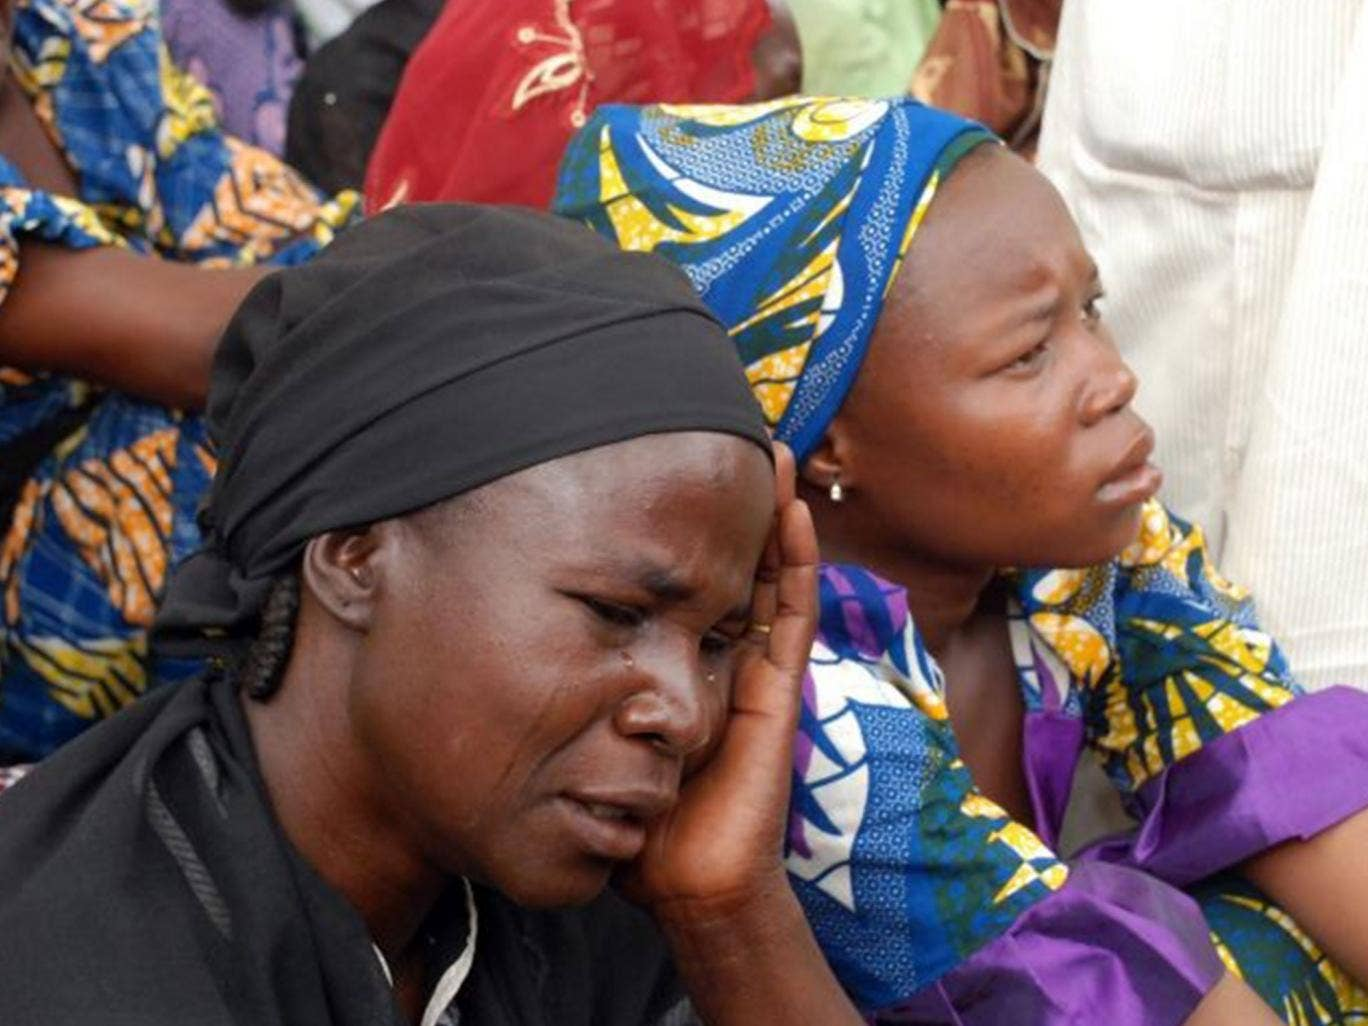 Mothers of the missing Chibok school girls abducted by Boko Haram Islamists gather to receive information from officials